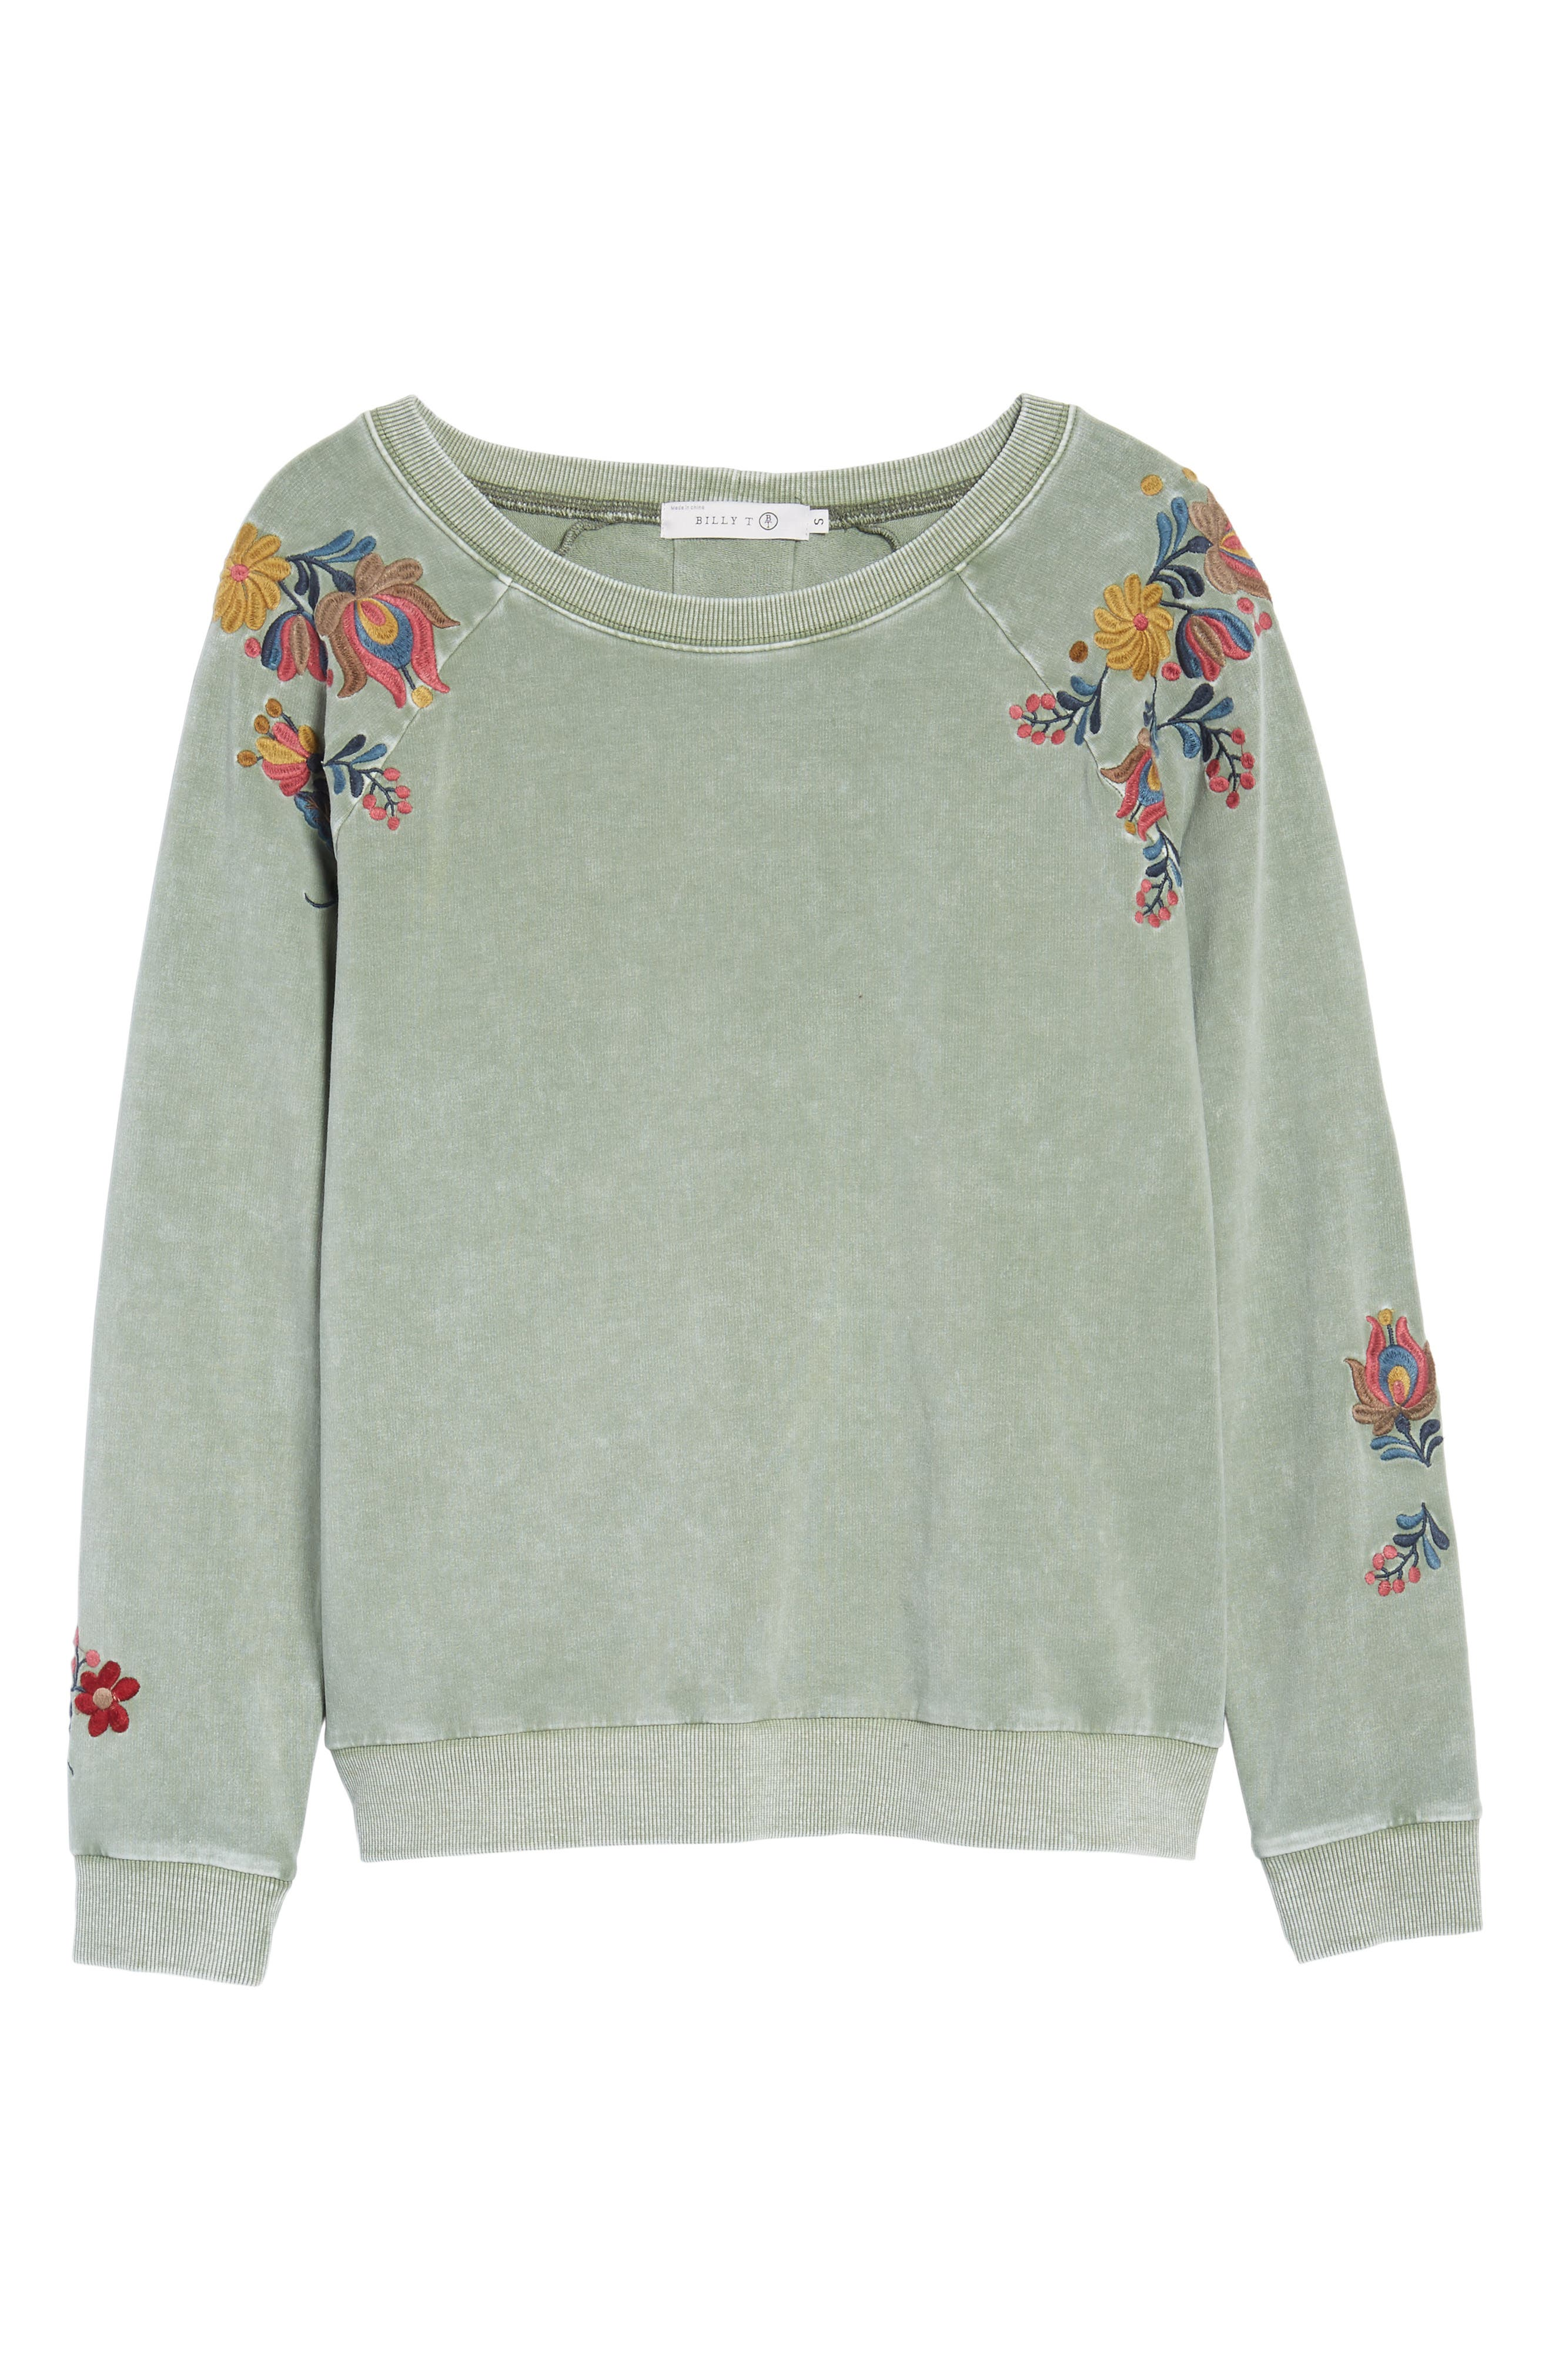 Embroidered Lace-Up Back Sweatshirt,                             Alternate thumbnail 6, color,                             301